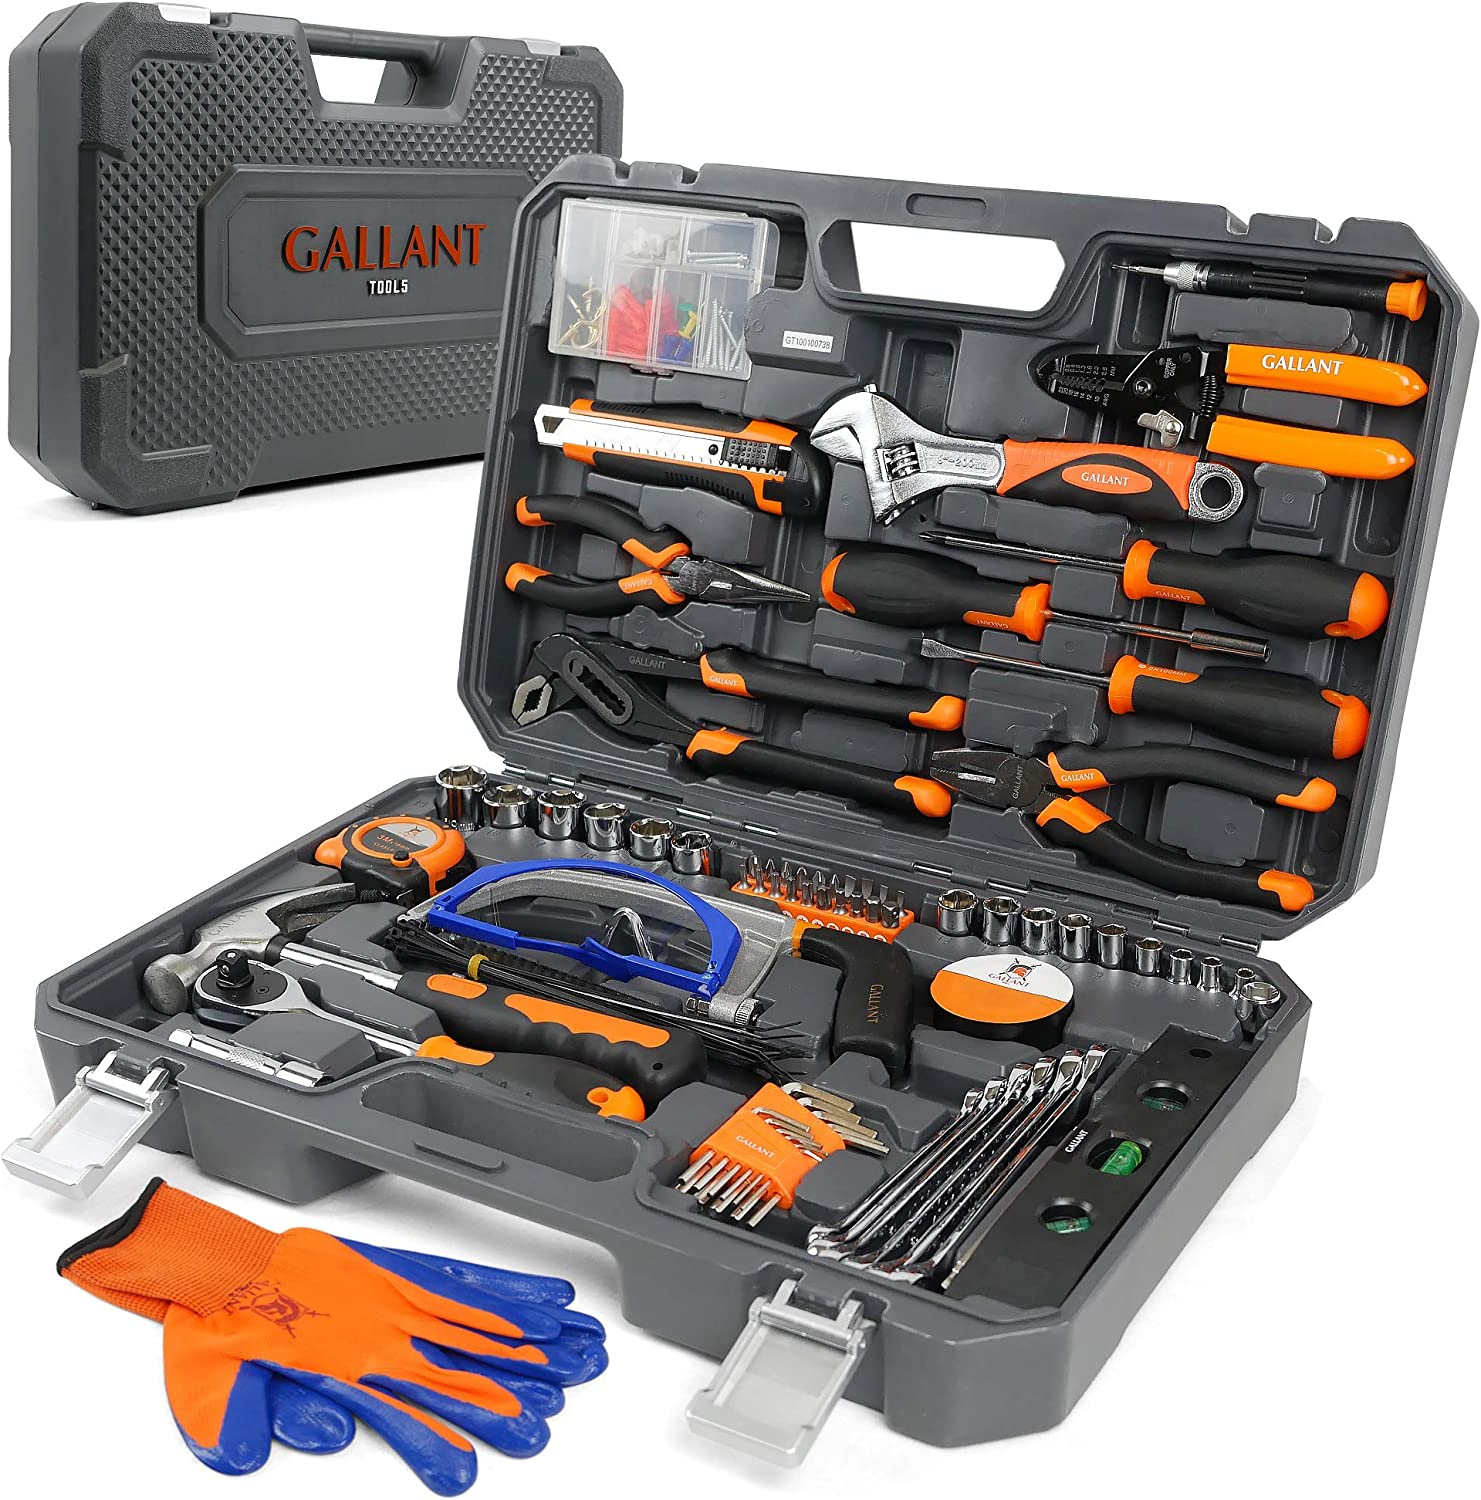 Premium Tool kit for home - Tool Set - Tools for Men - Tools Set - Home Tool Kits - Car Tool Kit - Tool Box Set - Tool Sets for Men and Women